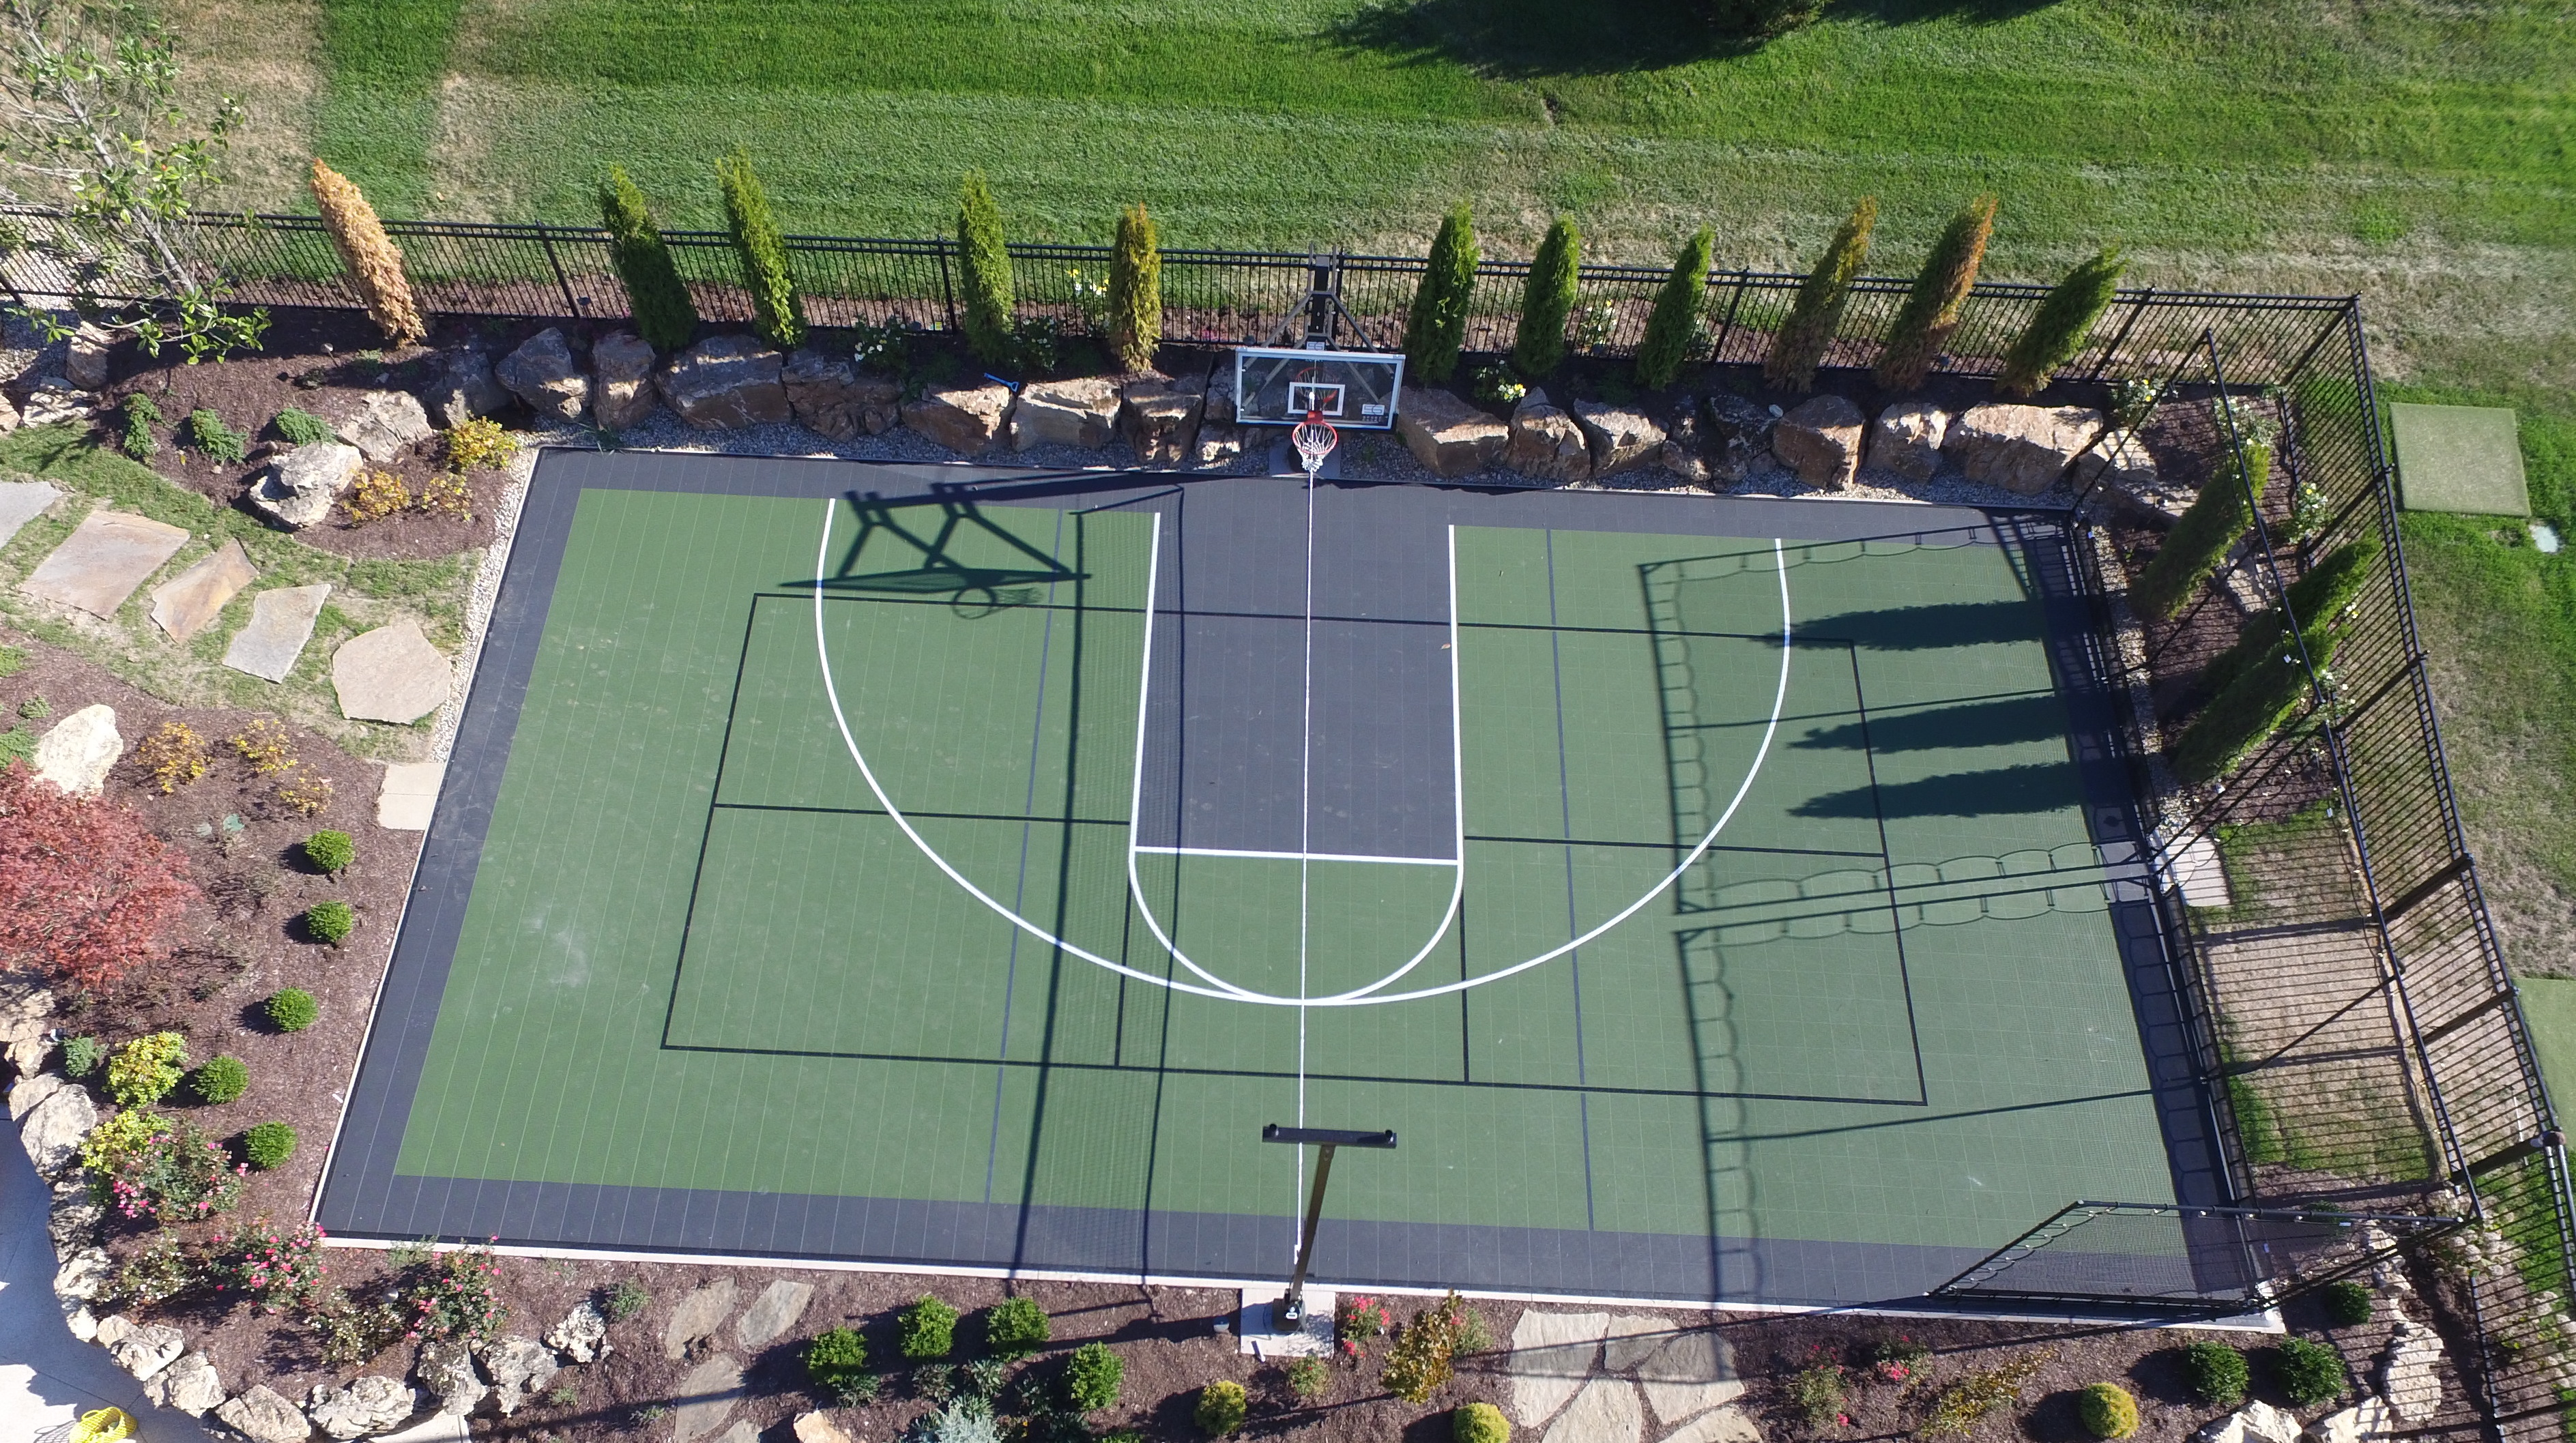 Why Choose A Sport Court Backyard Game Court Instead Of A